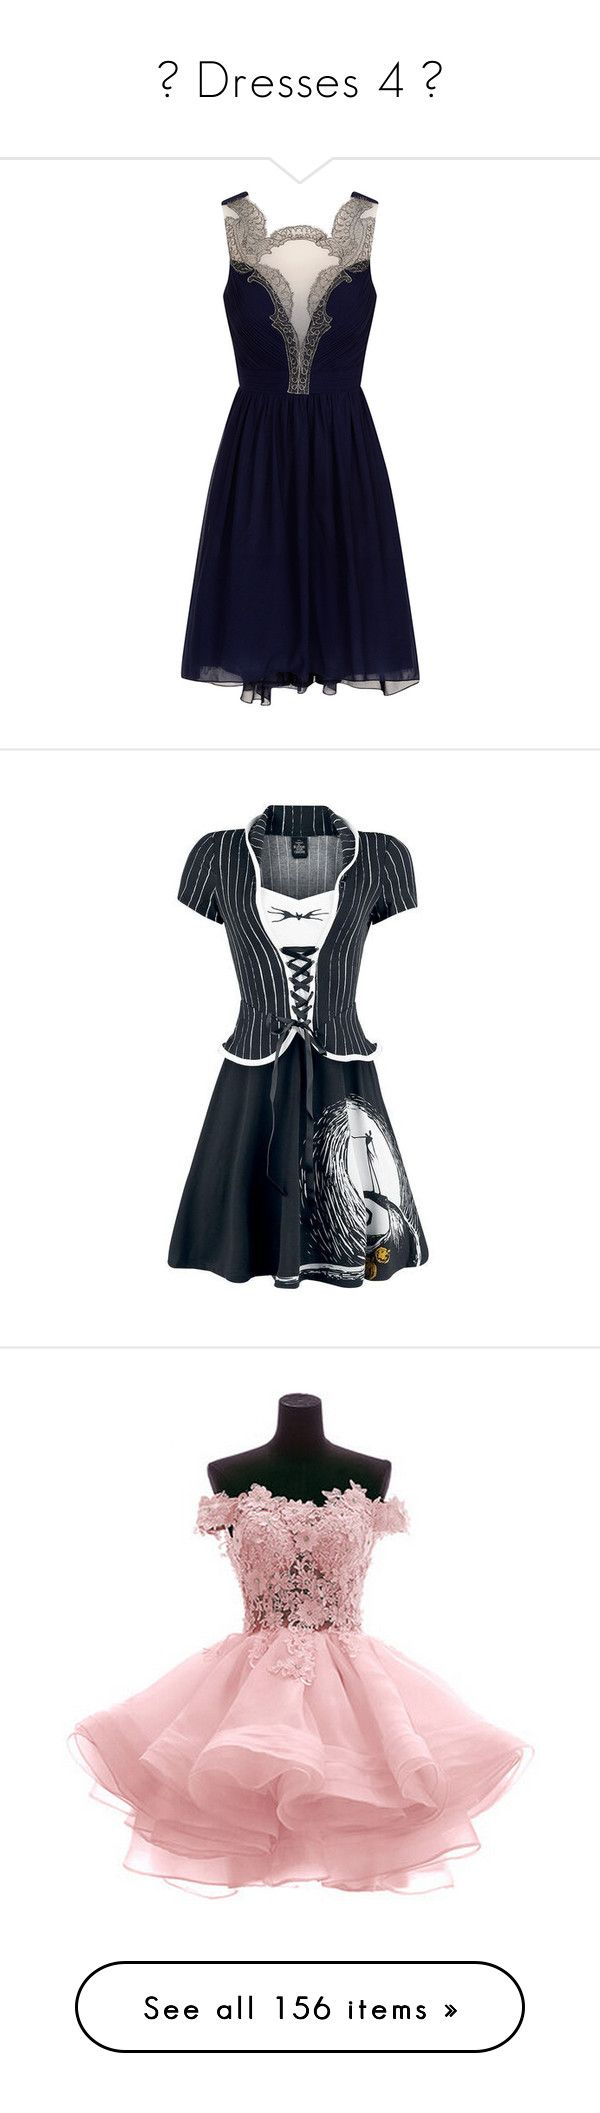 """""""❤ Dresses 4 ❤"""" by emerald-writer-girl ❤ liked on Polyvore featuring dresses, vestidos, short dresses, navy blue, mini dress, short prom dresses, navy blue cocktail dresses, navy prom dresses, short cocktail prom dresses and christmas dresses"""